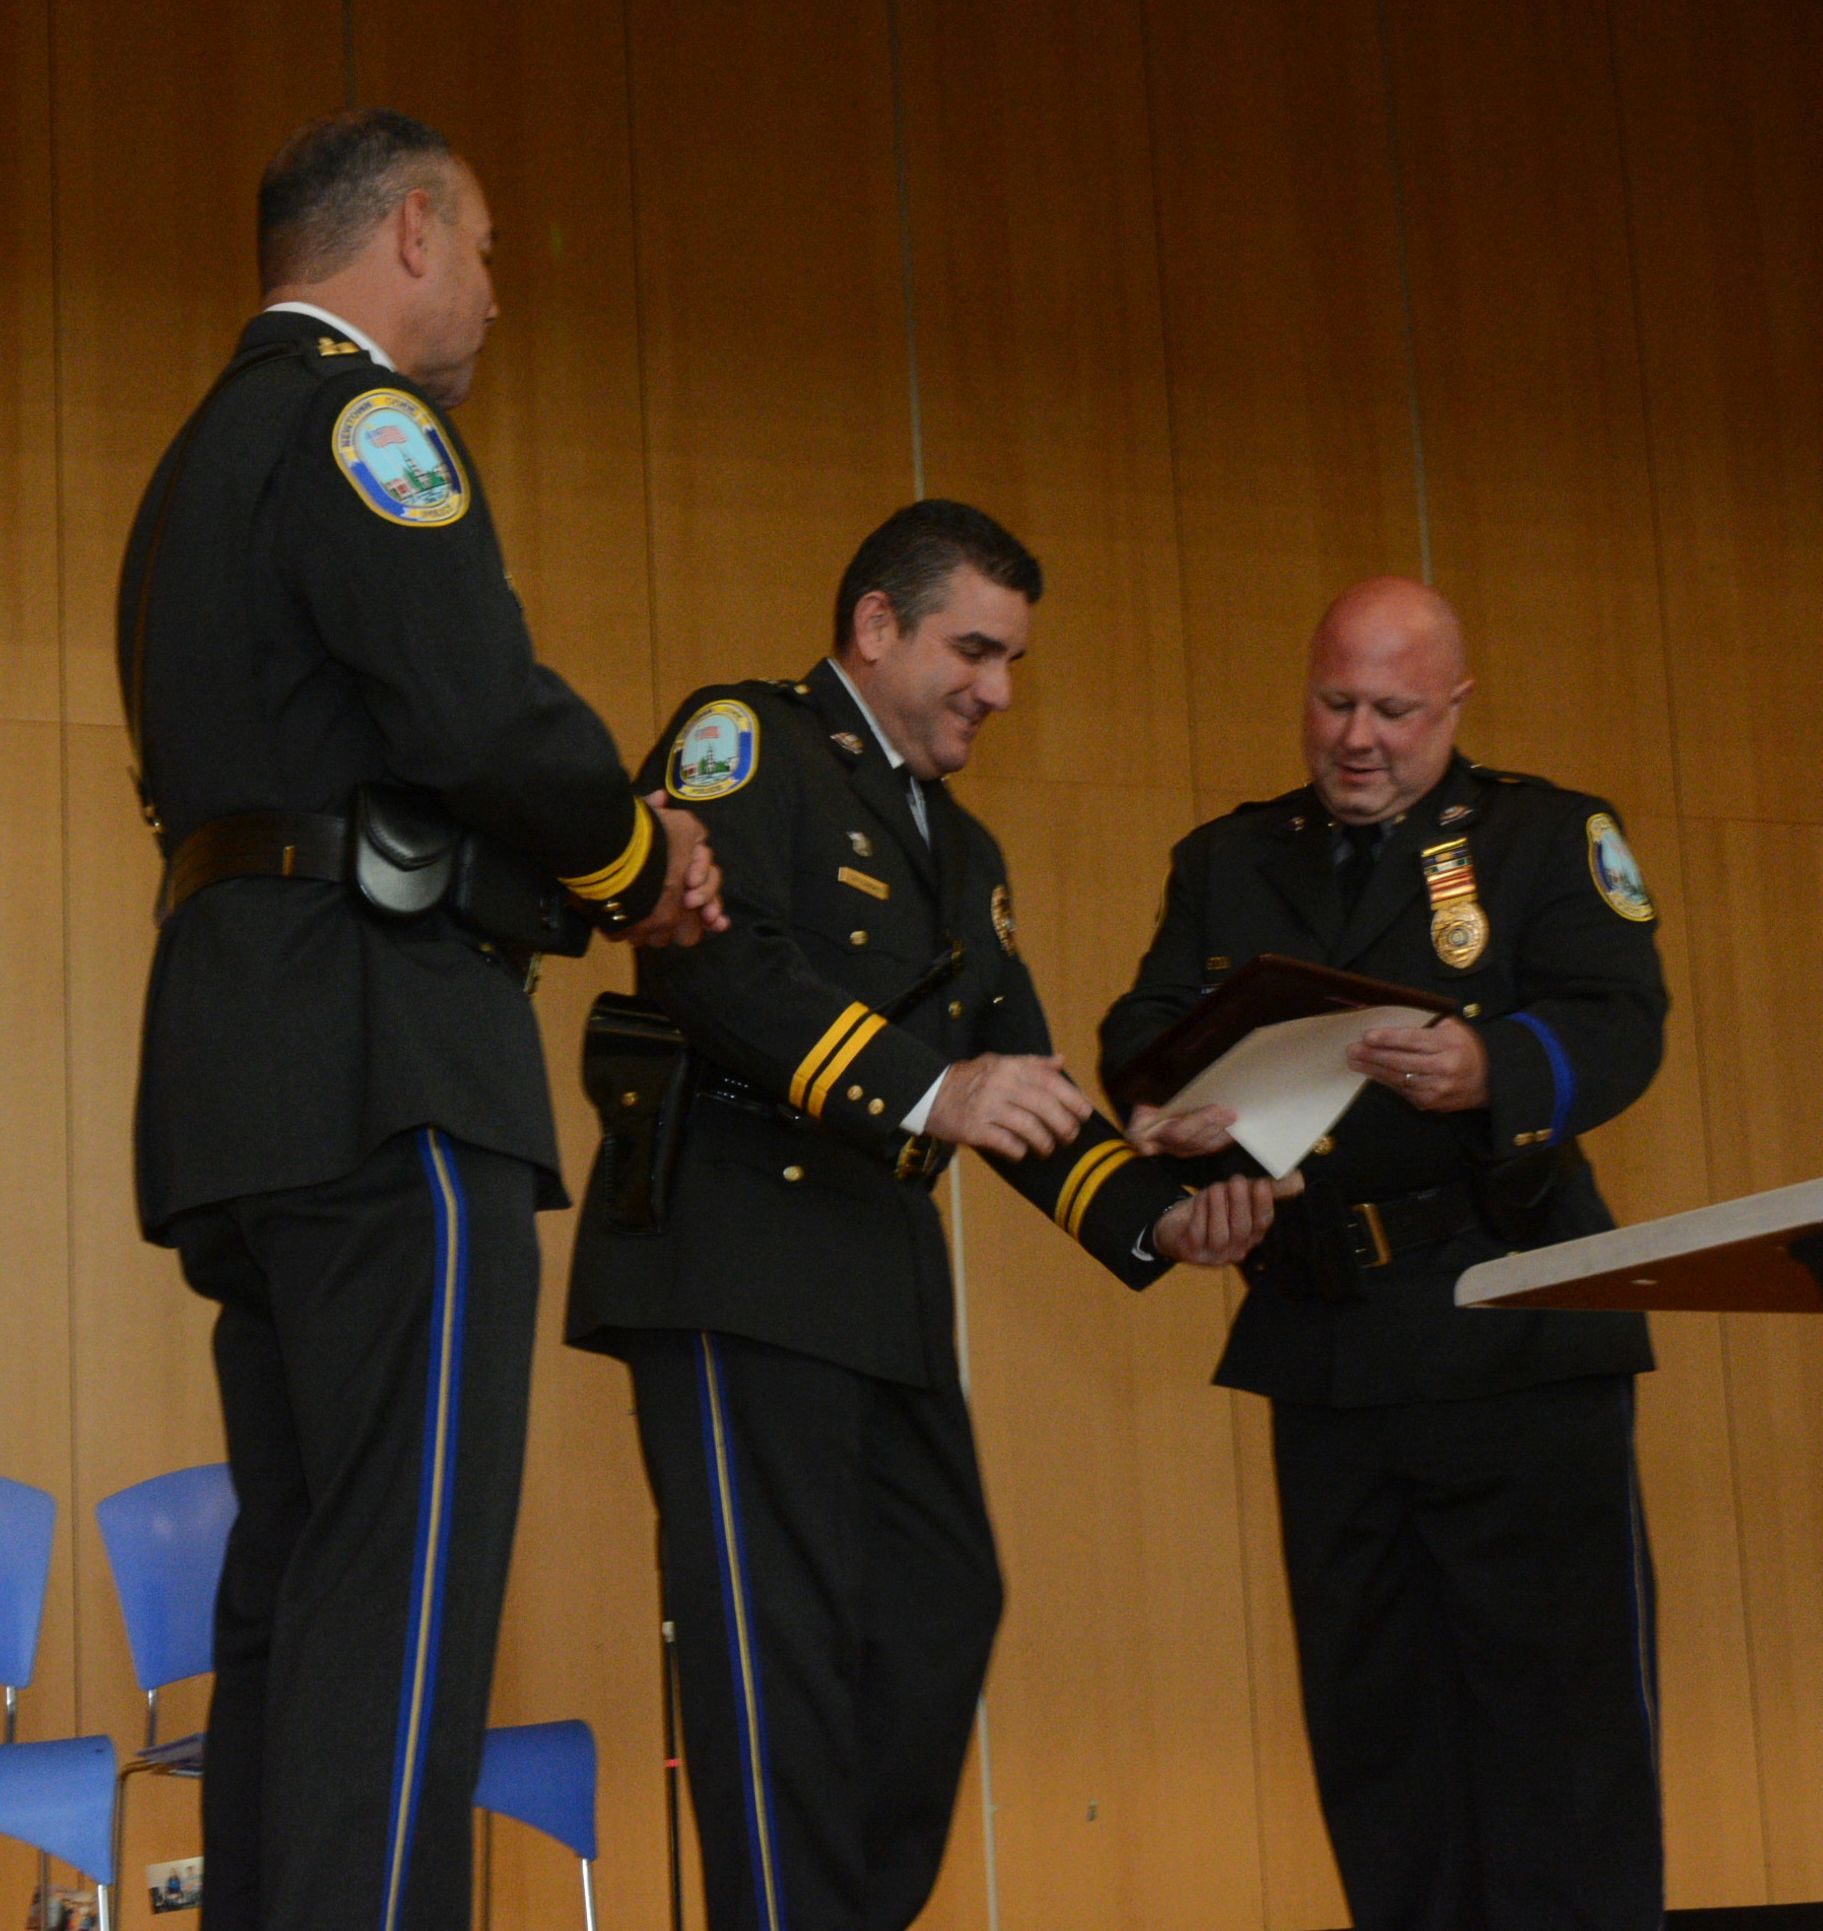 Police Receive Awards For Public Safety Excellence The Newtown Bee